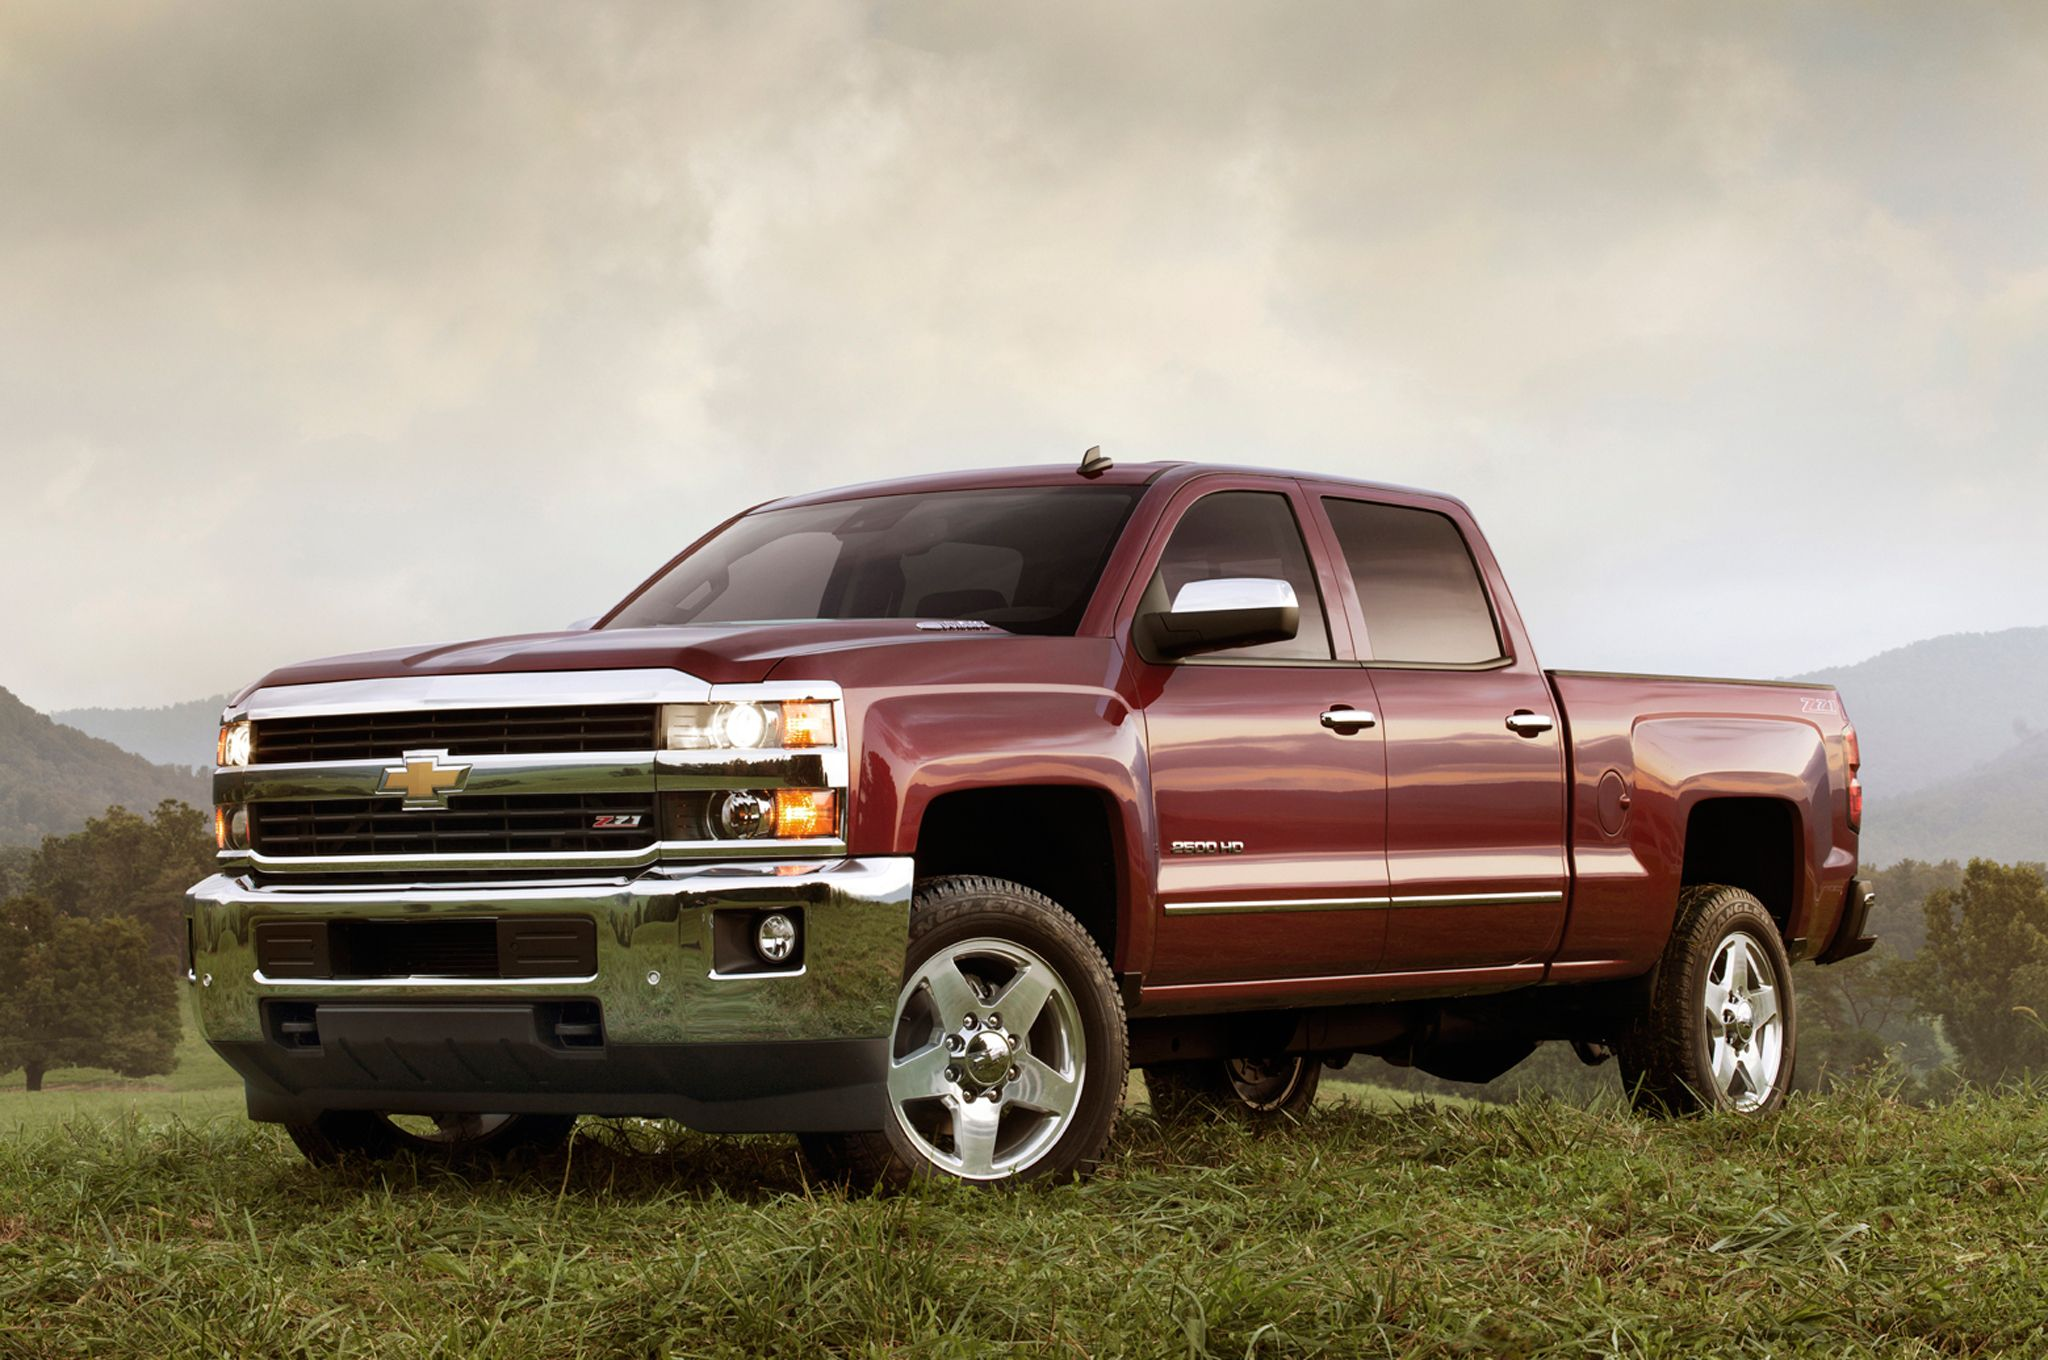 Chevrolet Silverado 1500 Car And Driver Chevy Silverado